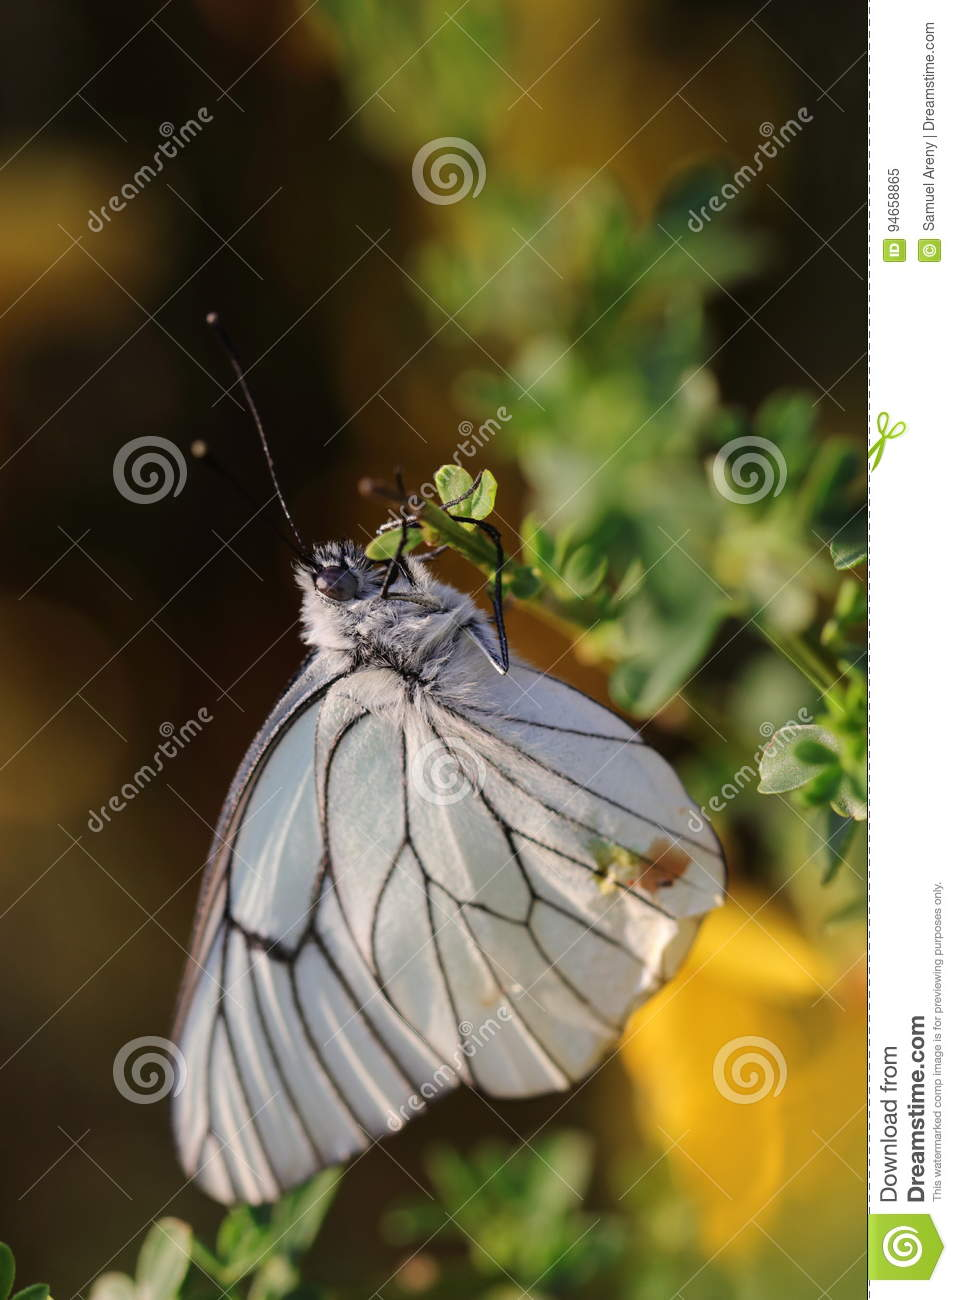 Black Veined White Butterfly Stock Image - Image of hexapod